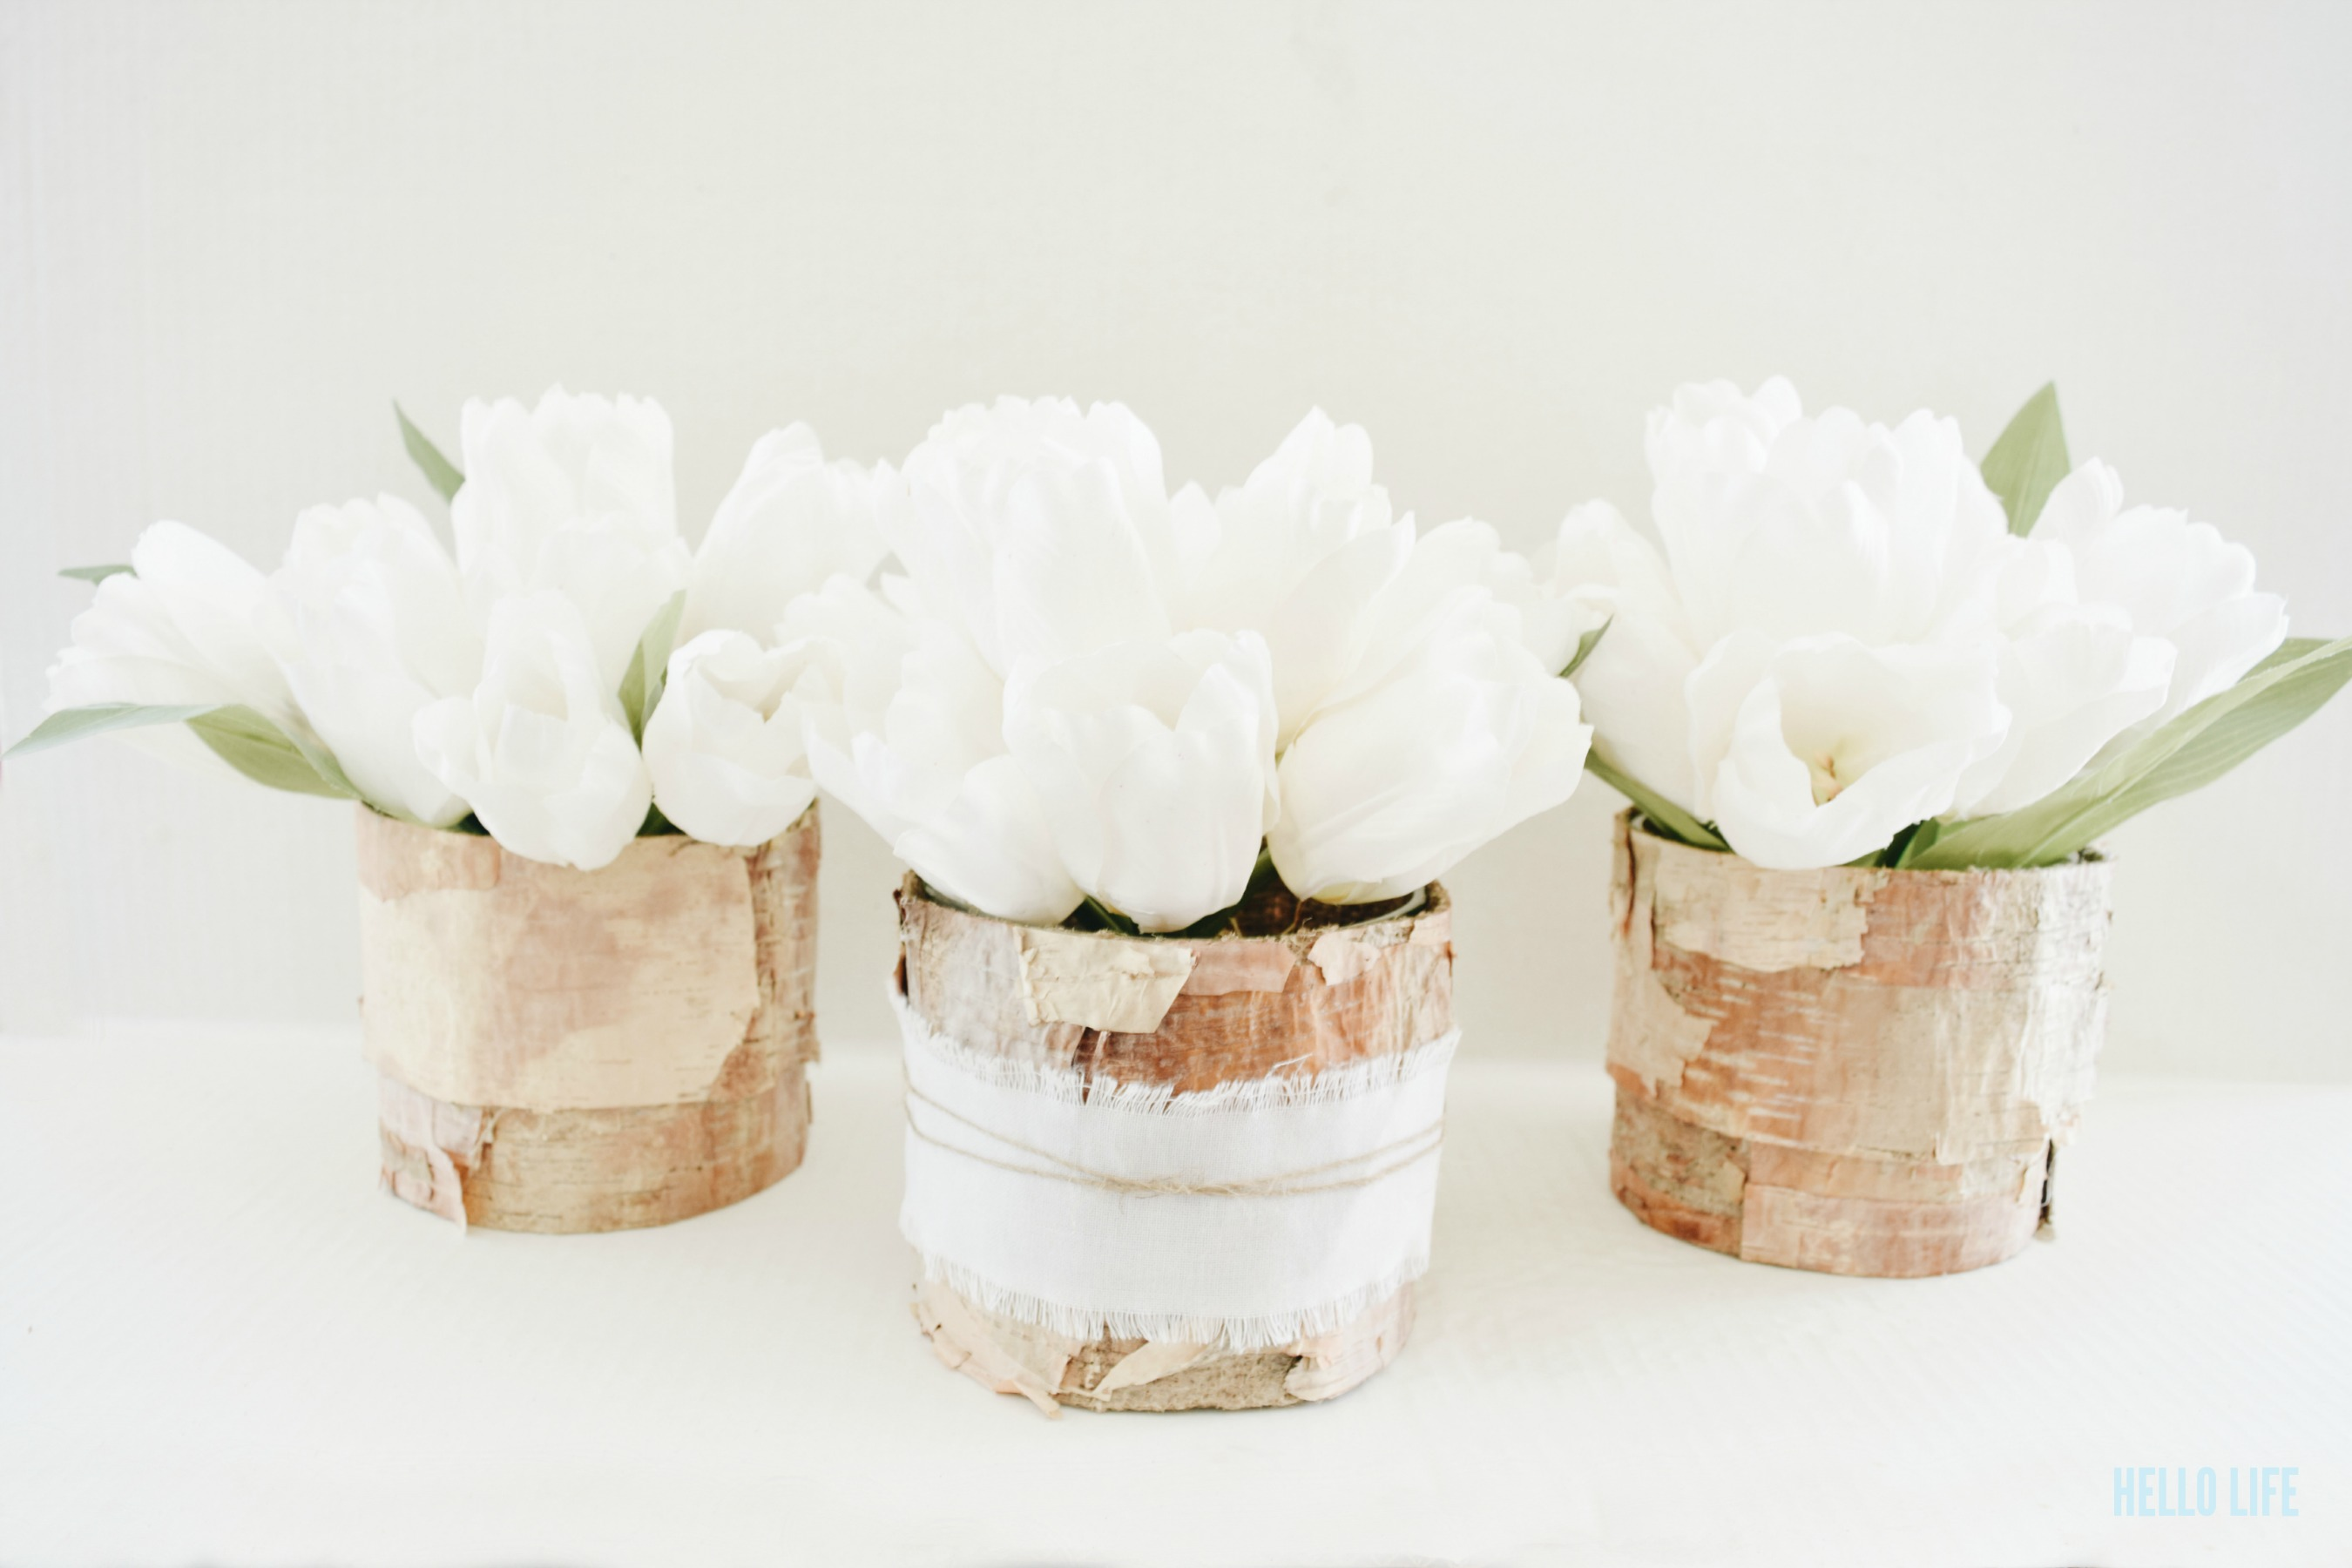 DIY Rustic Centerpiece- Simple yet beautiful rustic centerpiece idea for a wedding reception, or any type of party. Easy to make on the cheap!